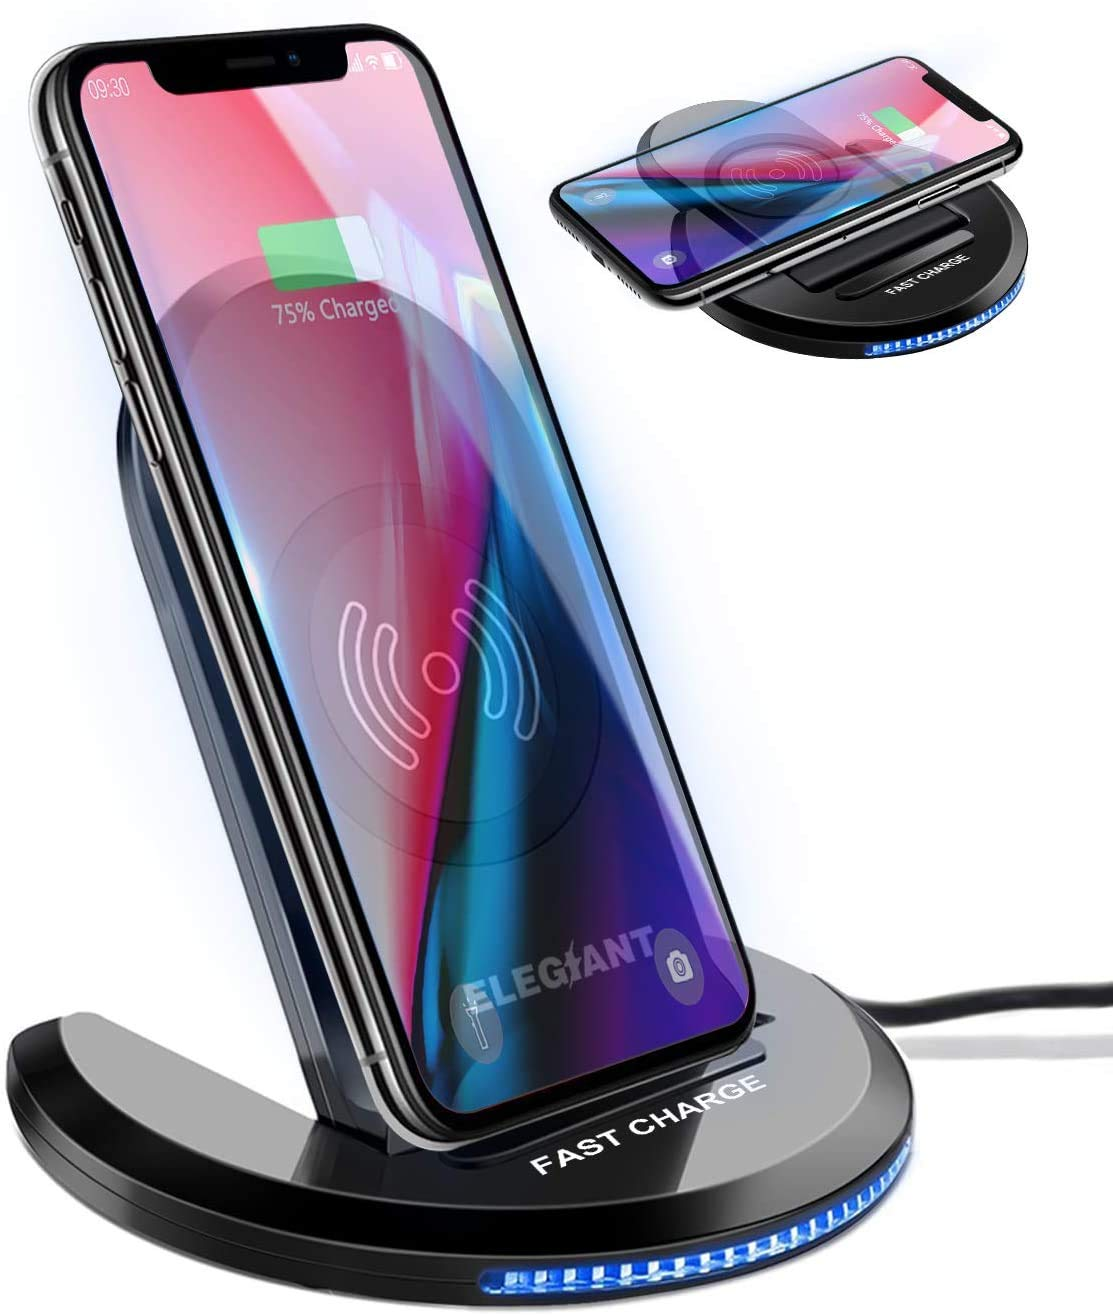 30W Qi-Certified Wireless Charging Pad,6-Coils Wireless Charging Mat Compatible iPhone Xs Max//XR//XS//X//8//8 Plus Blue Slicecharge Pro,Wireless Charger Galaxy S10//S9//Note9